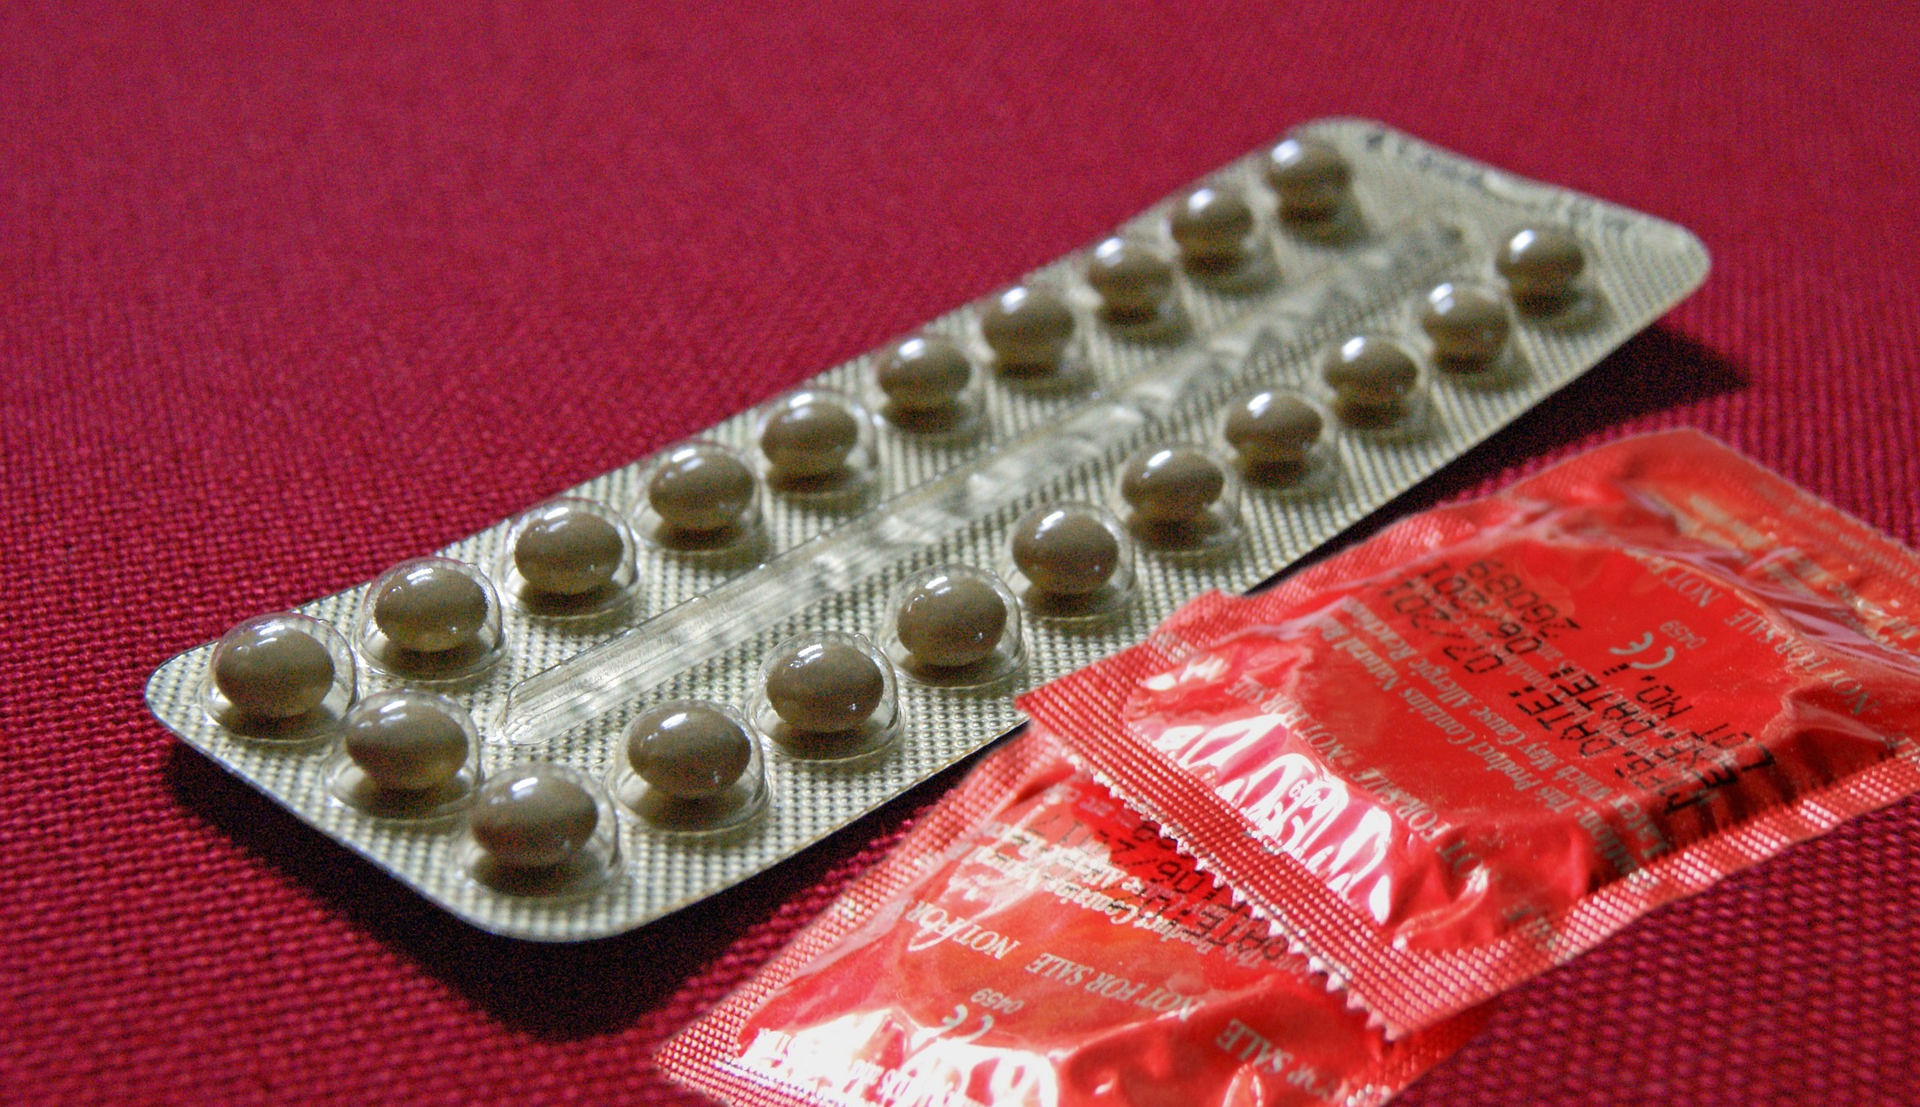 Why birth control pills sometimes fail?